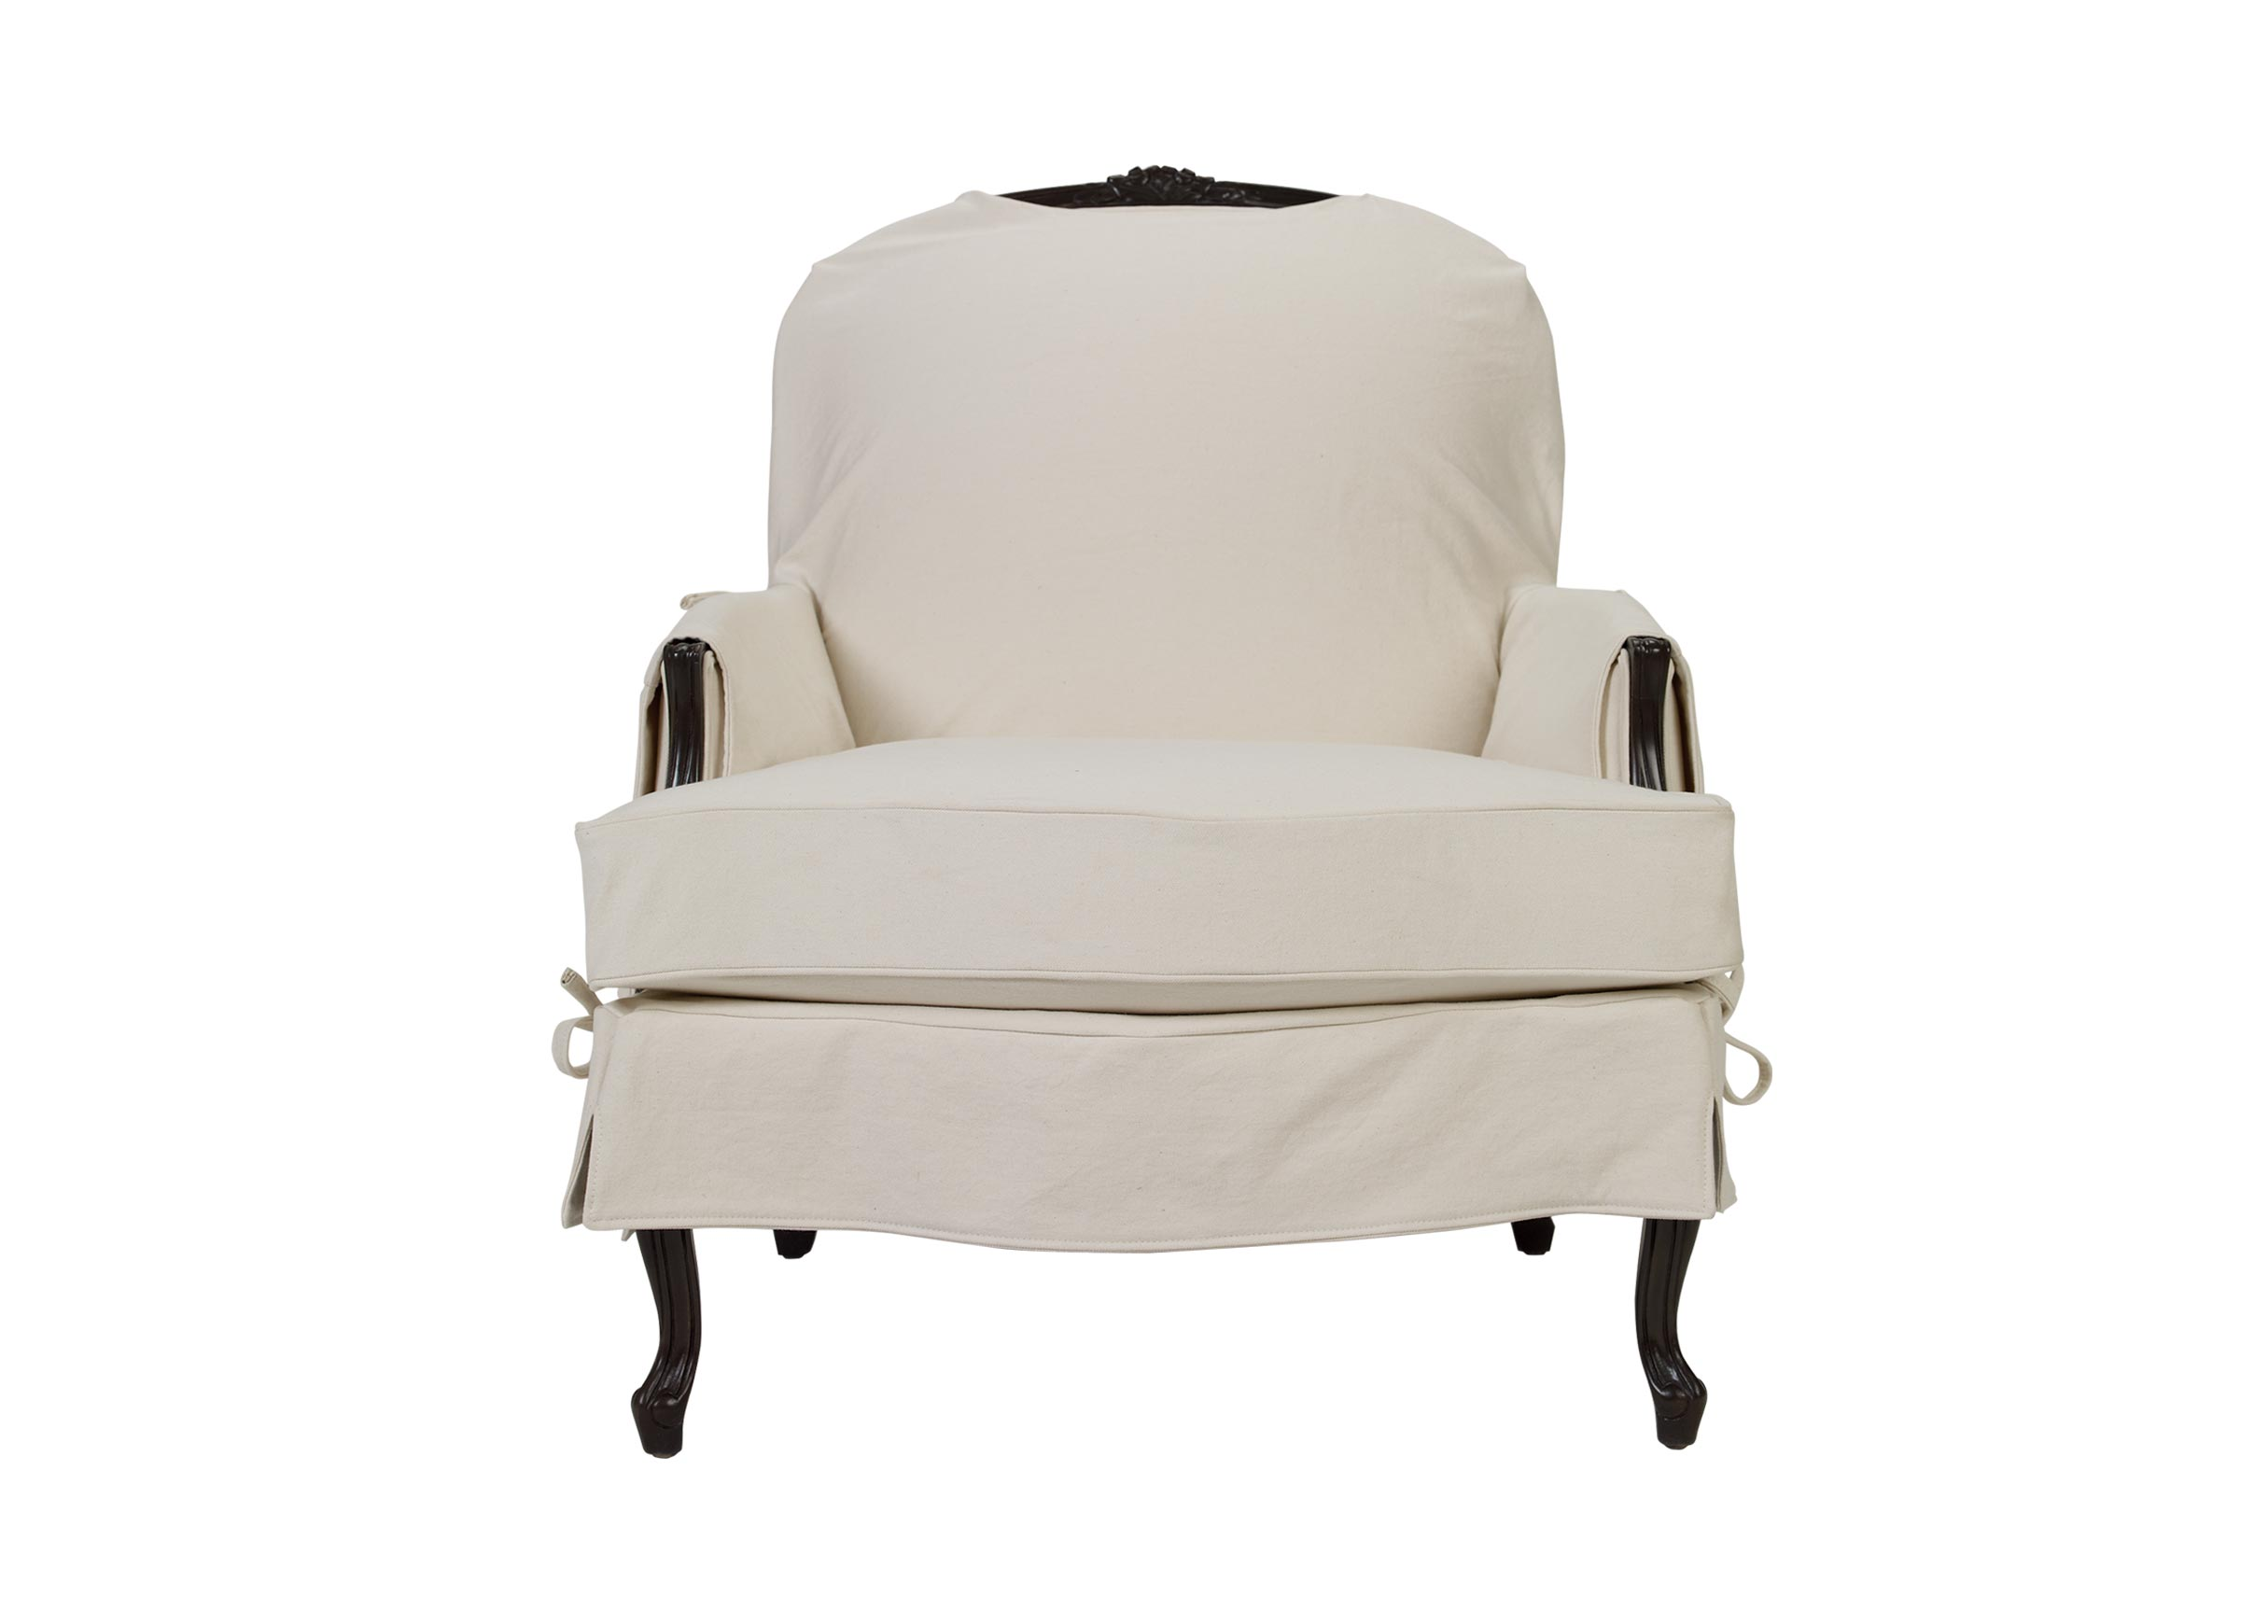 incredible pic ideas wing and chair salon seat back table concept for chairs kitchen upholstered with modern dining leather fixed chic white slipcover shabby unusual wingback